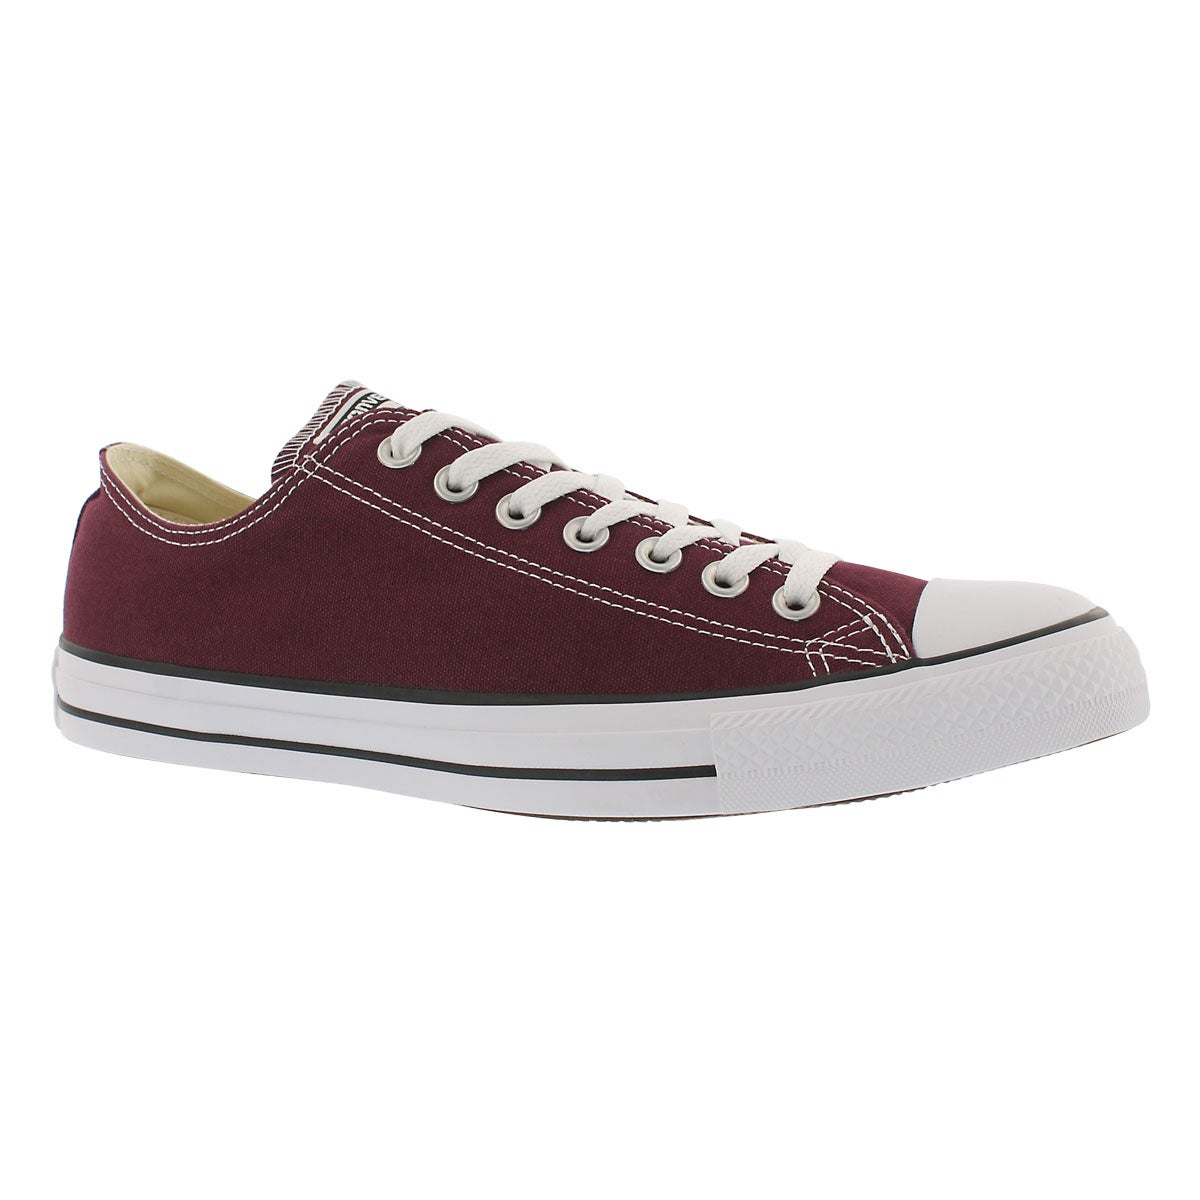 Men's CT ALL STAR CORE OX burgundy sneakers